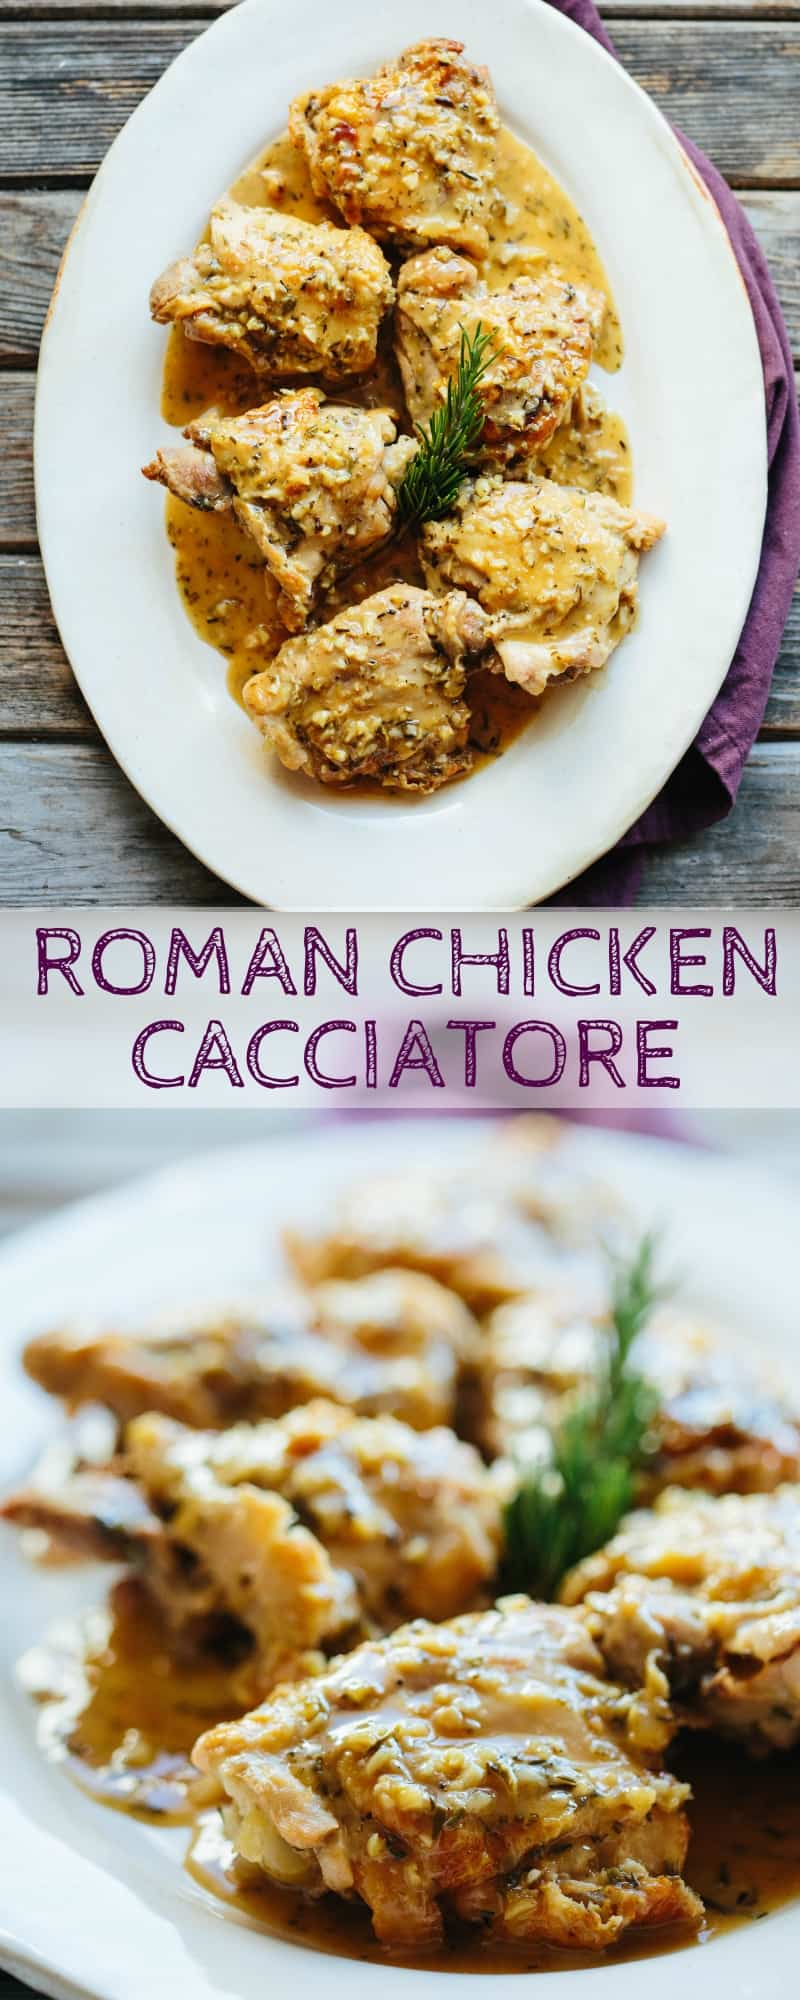 ROMAN CHICKEN CACCIATORE is made with bone-in chicken thighs slowly braised in a flavorful liquid made from white wine, vinegar, garlic and rosemary. #chicken #cacciatore #easy #recipe #roman #vinegar | ColeyCooks.com